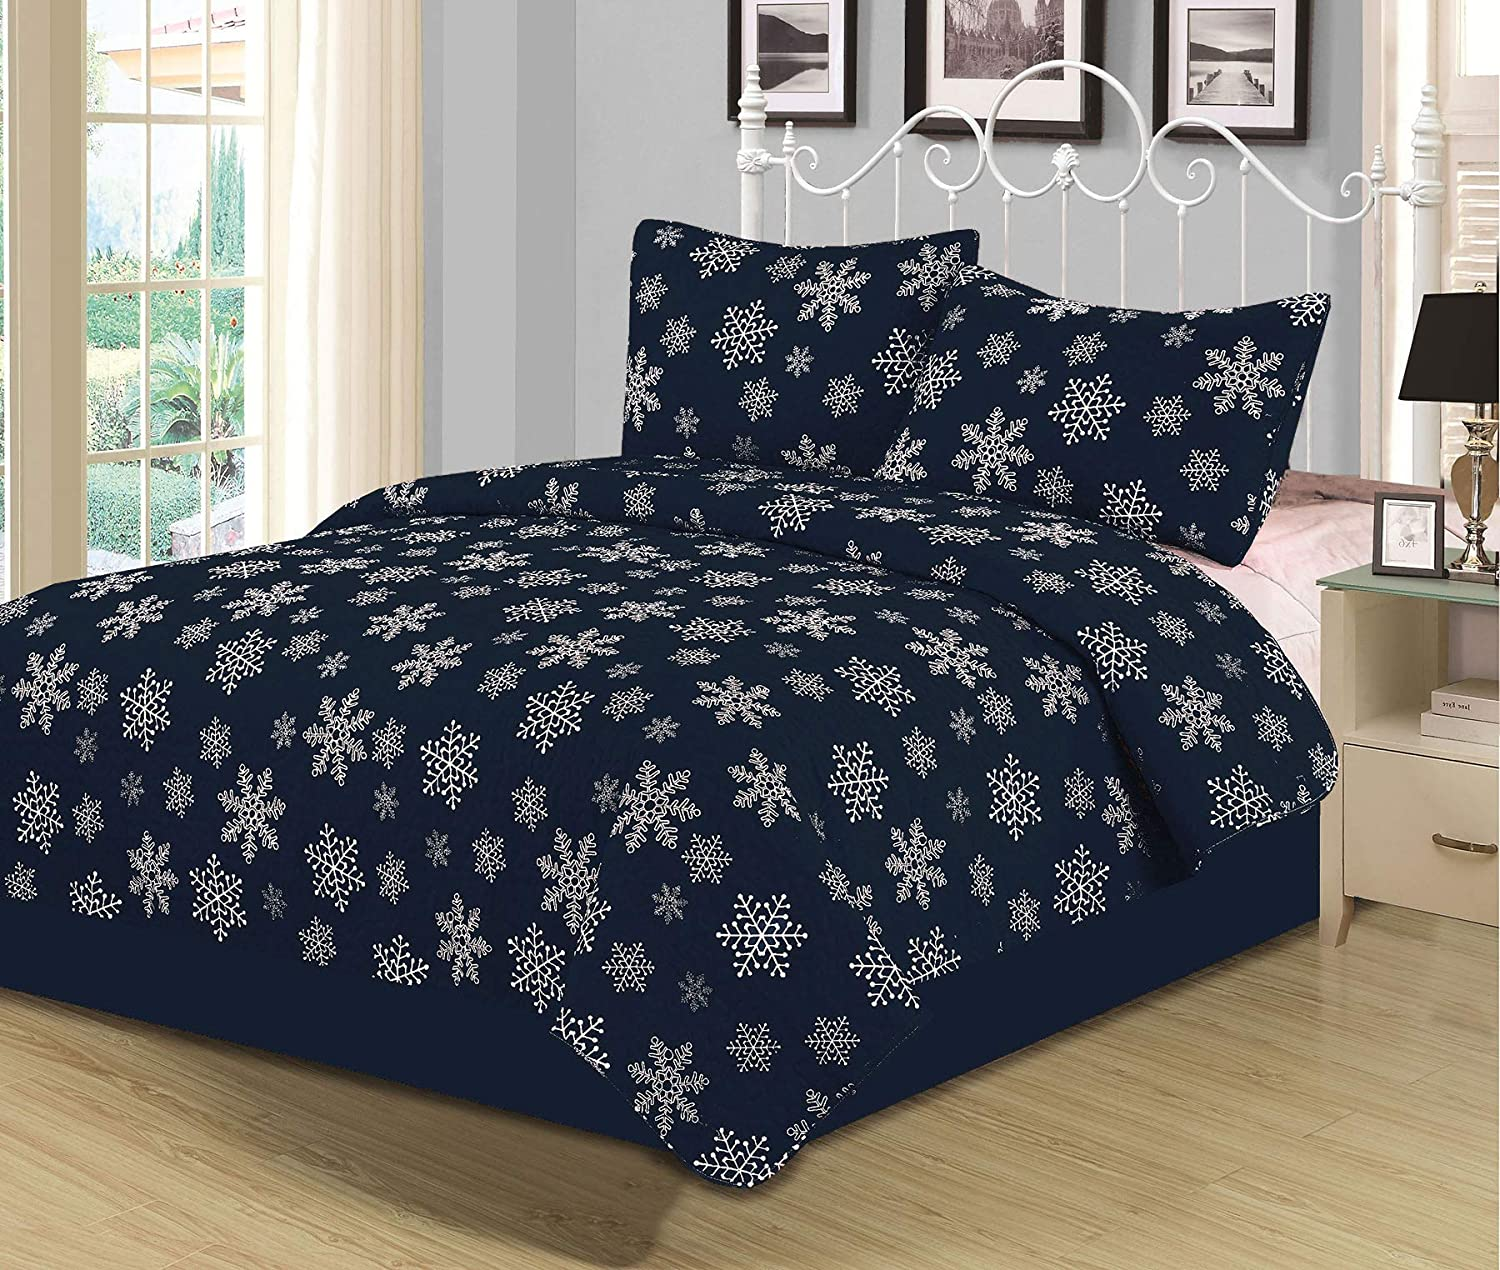 Twin Snowflake Quilt Bedding Set Winter Holiday Christmas, Navy Blue White